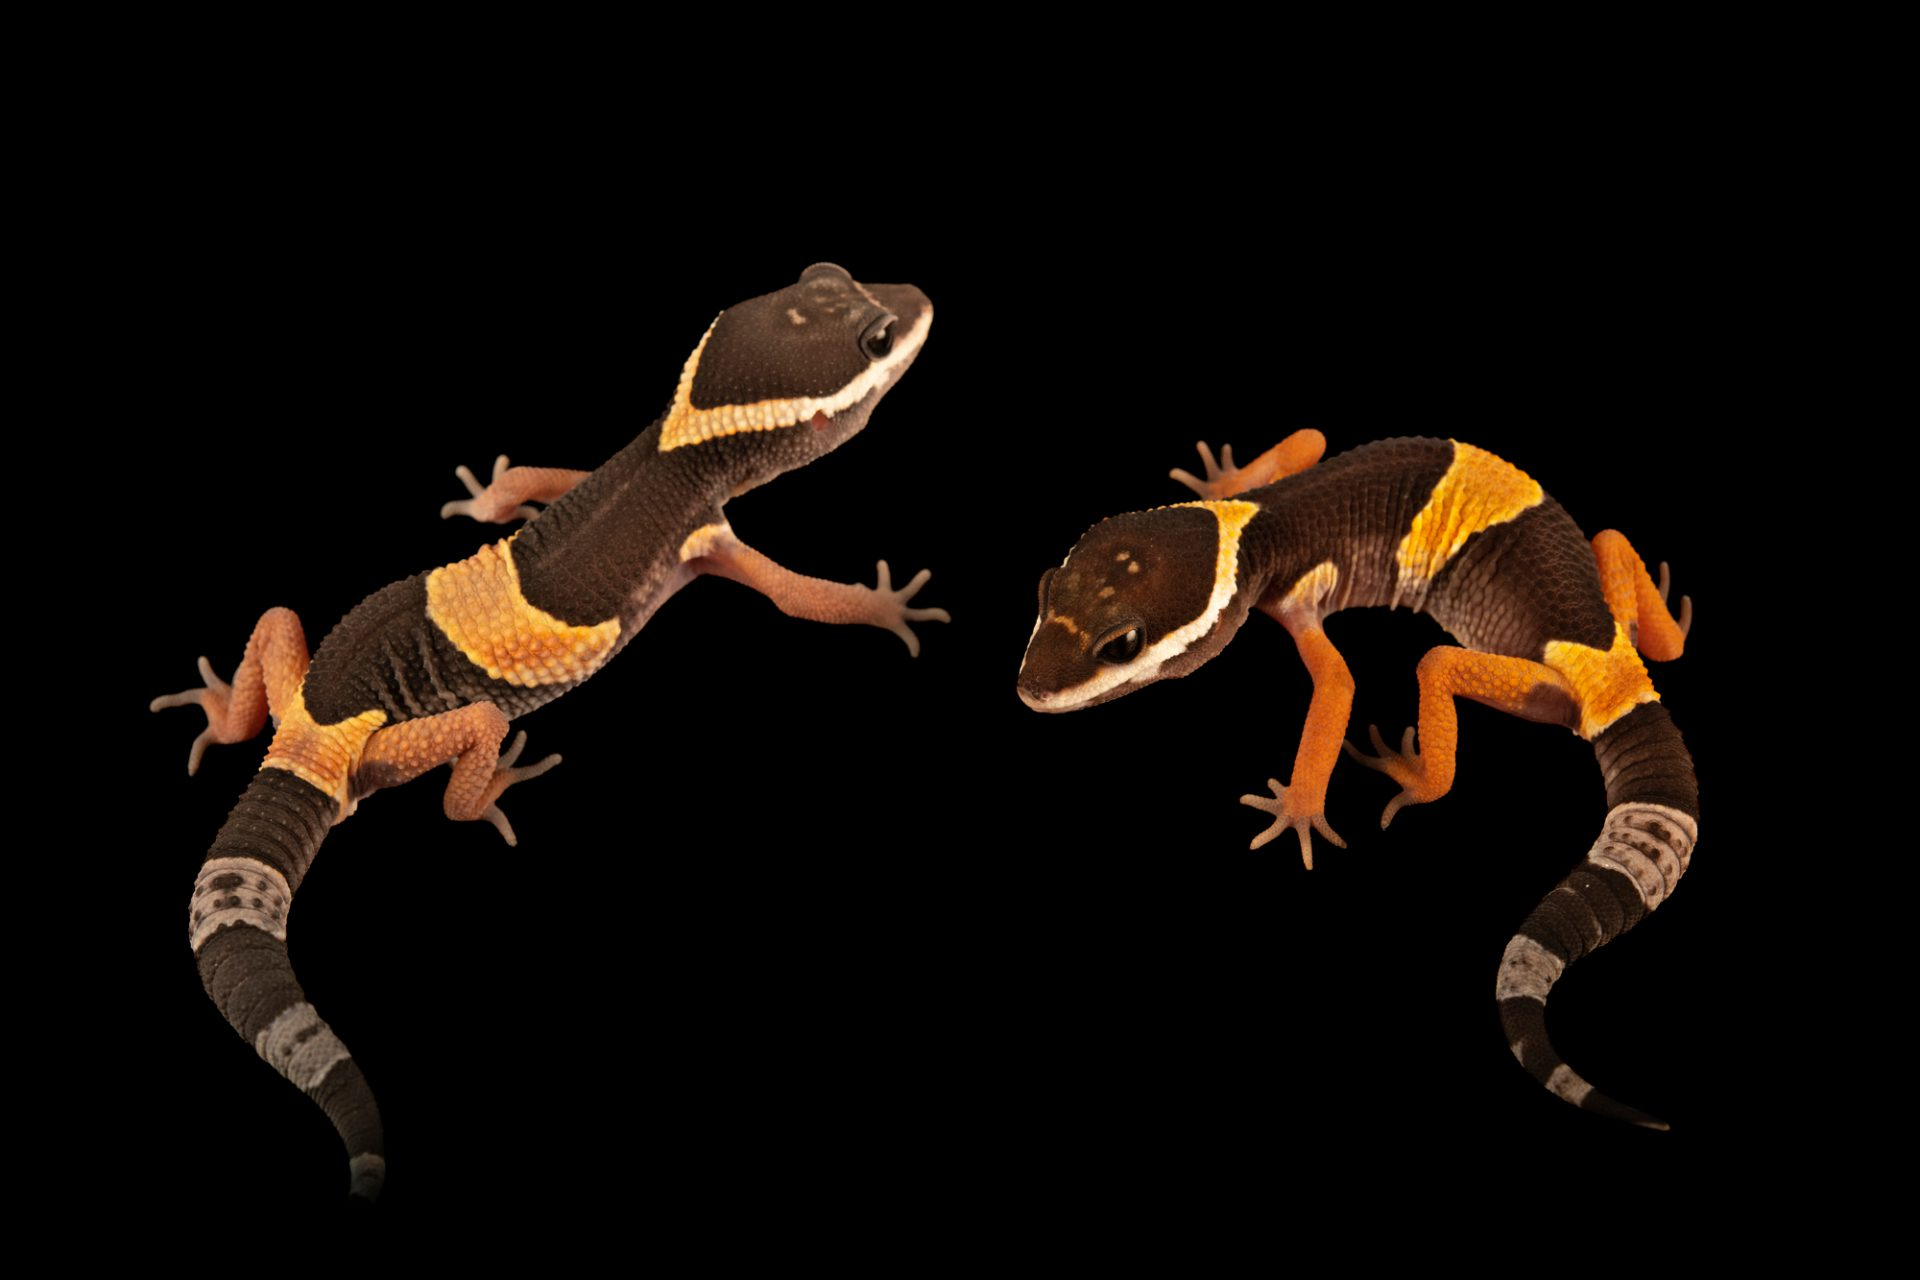 Photo: Two East Indian leopard geckos (Eublepharis hardwickii) from a private collection.